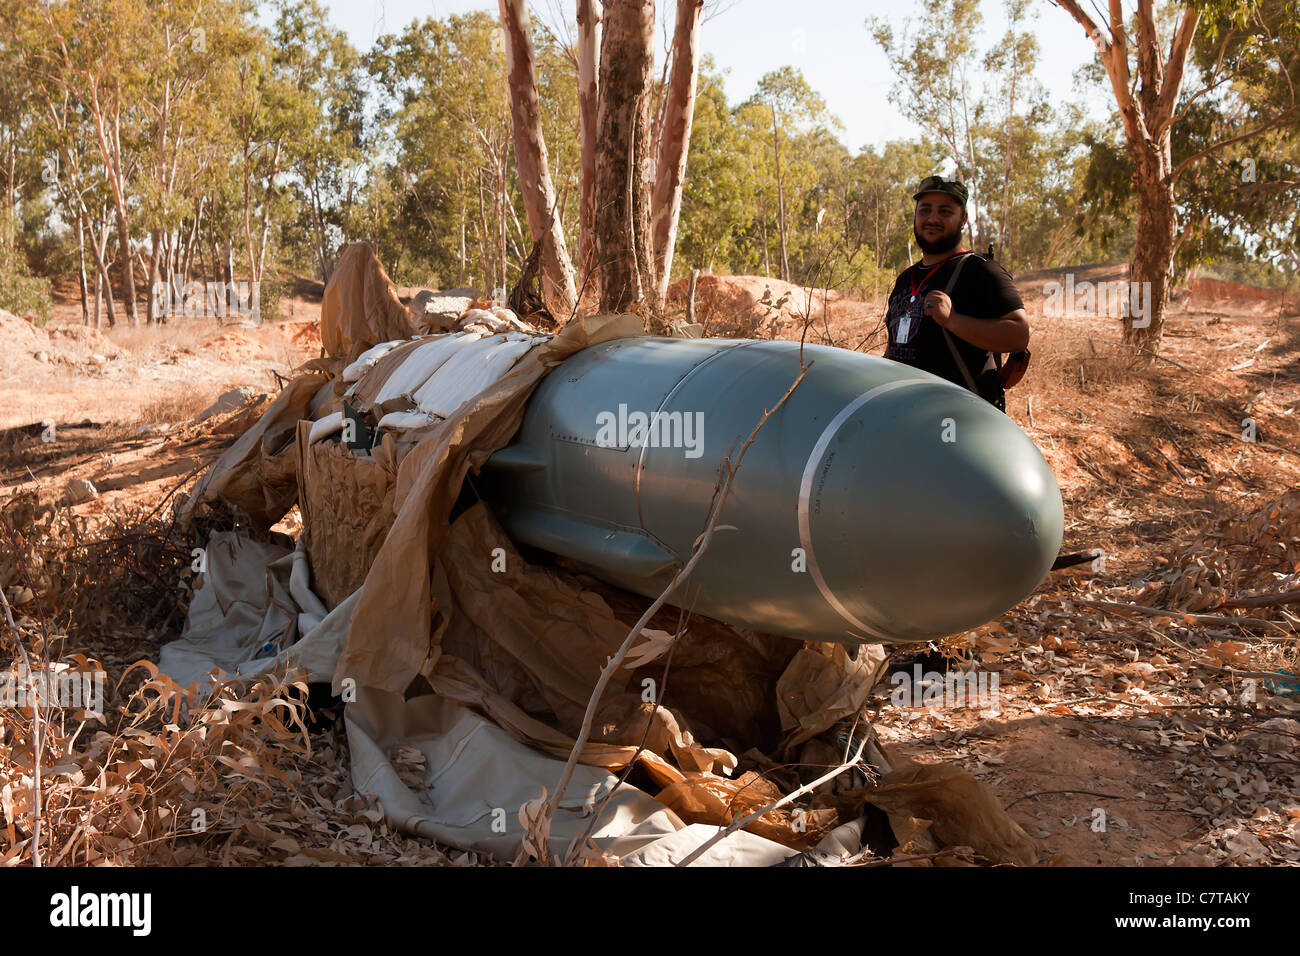 P 21 Styx  radar guided cruise missile used by Col Gaddafi conflict war civil Qaddafi weapon - Stock Image